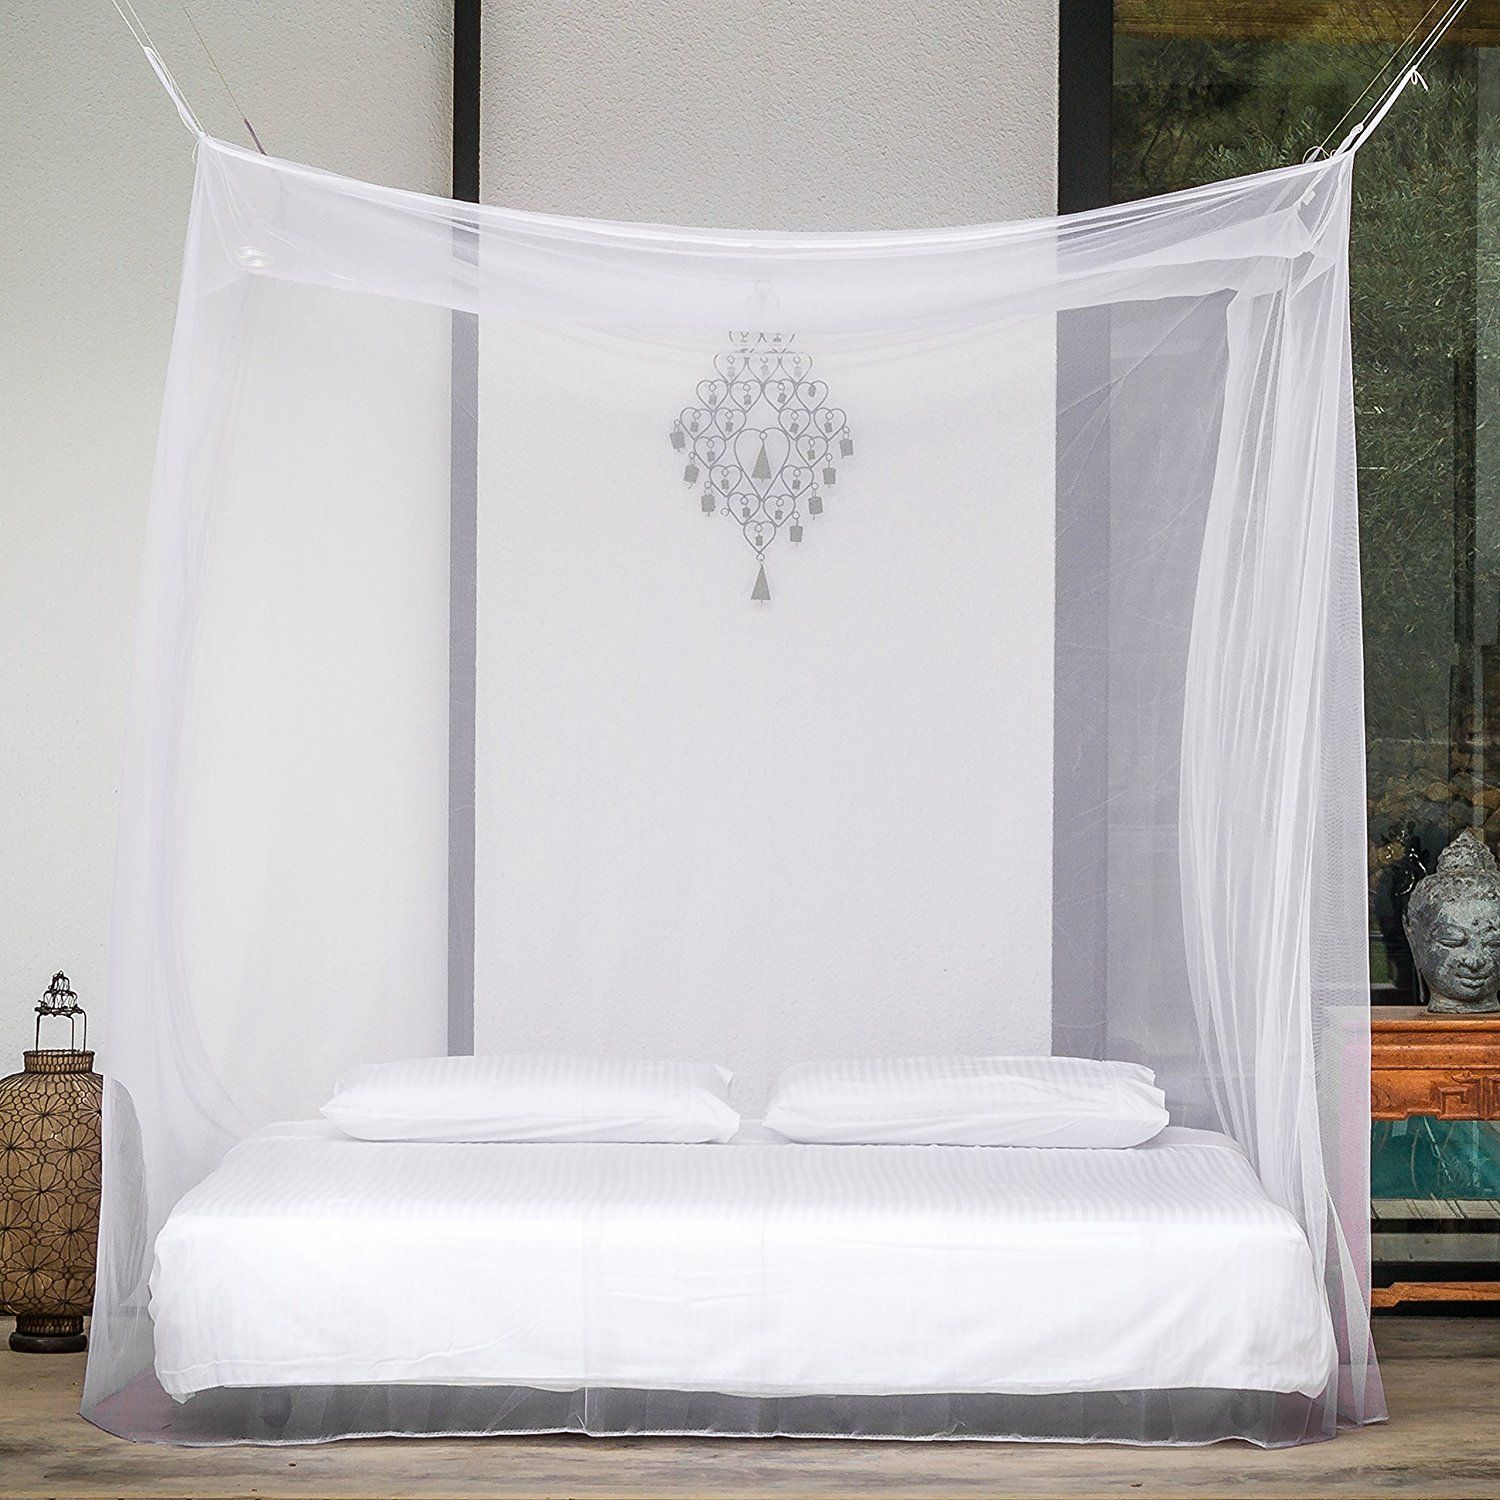 Mosquito net mosquito net mosquito net canopy bed canopy for double beds inse SS